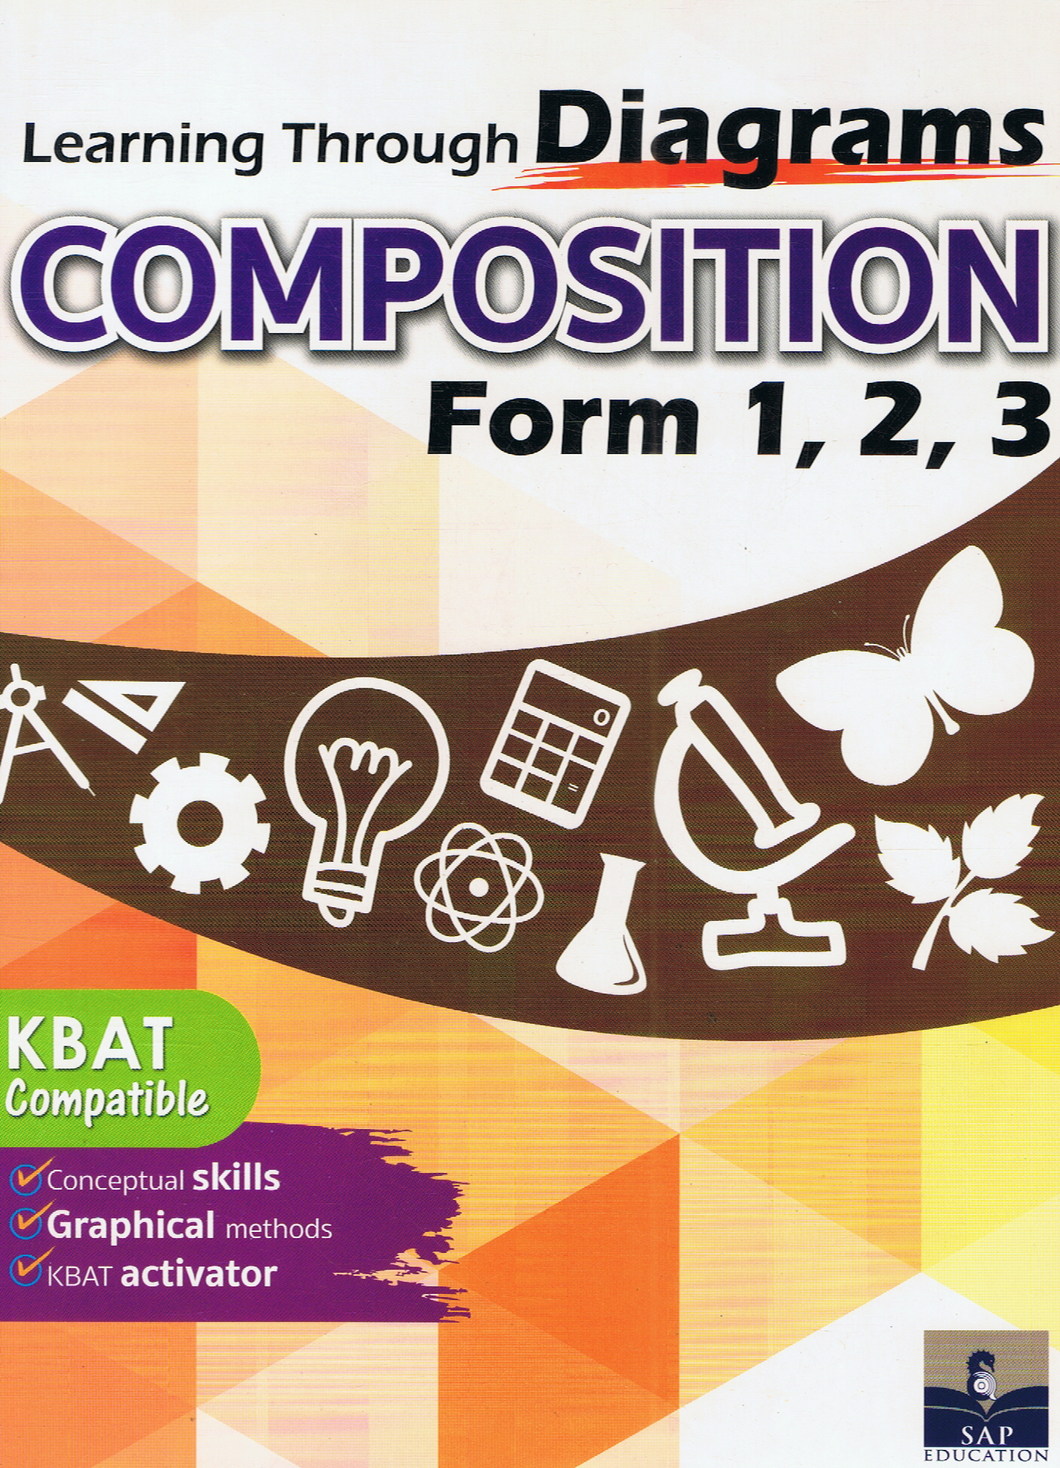 SAP Pendidikan-Learning Through Diagrams Composition Form 1,2,3-9789673215003-BukuDBP.com